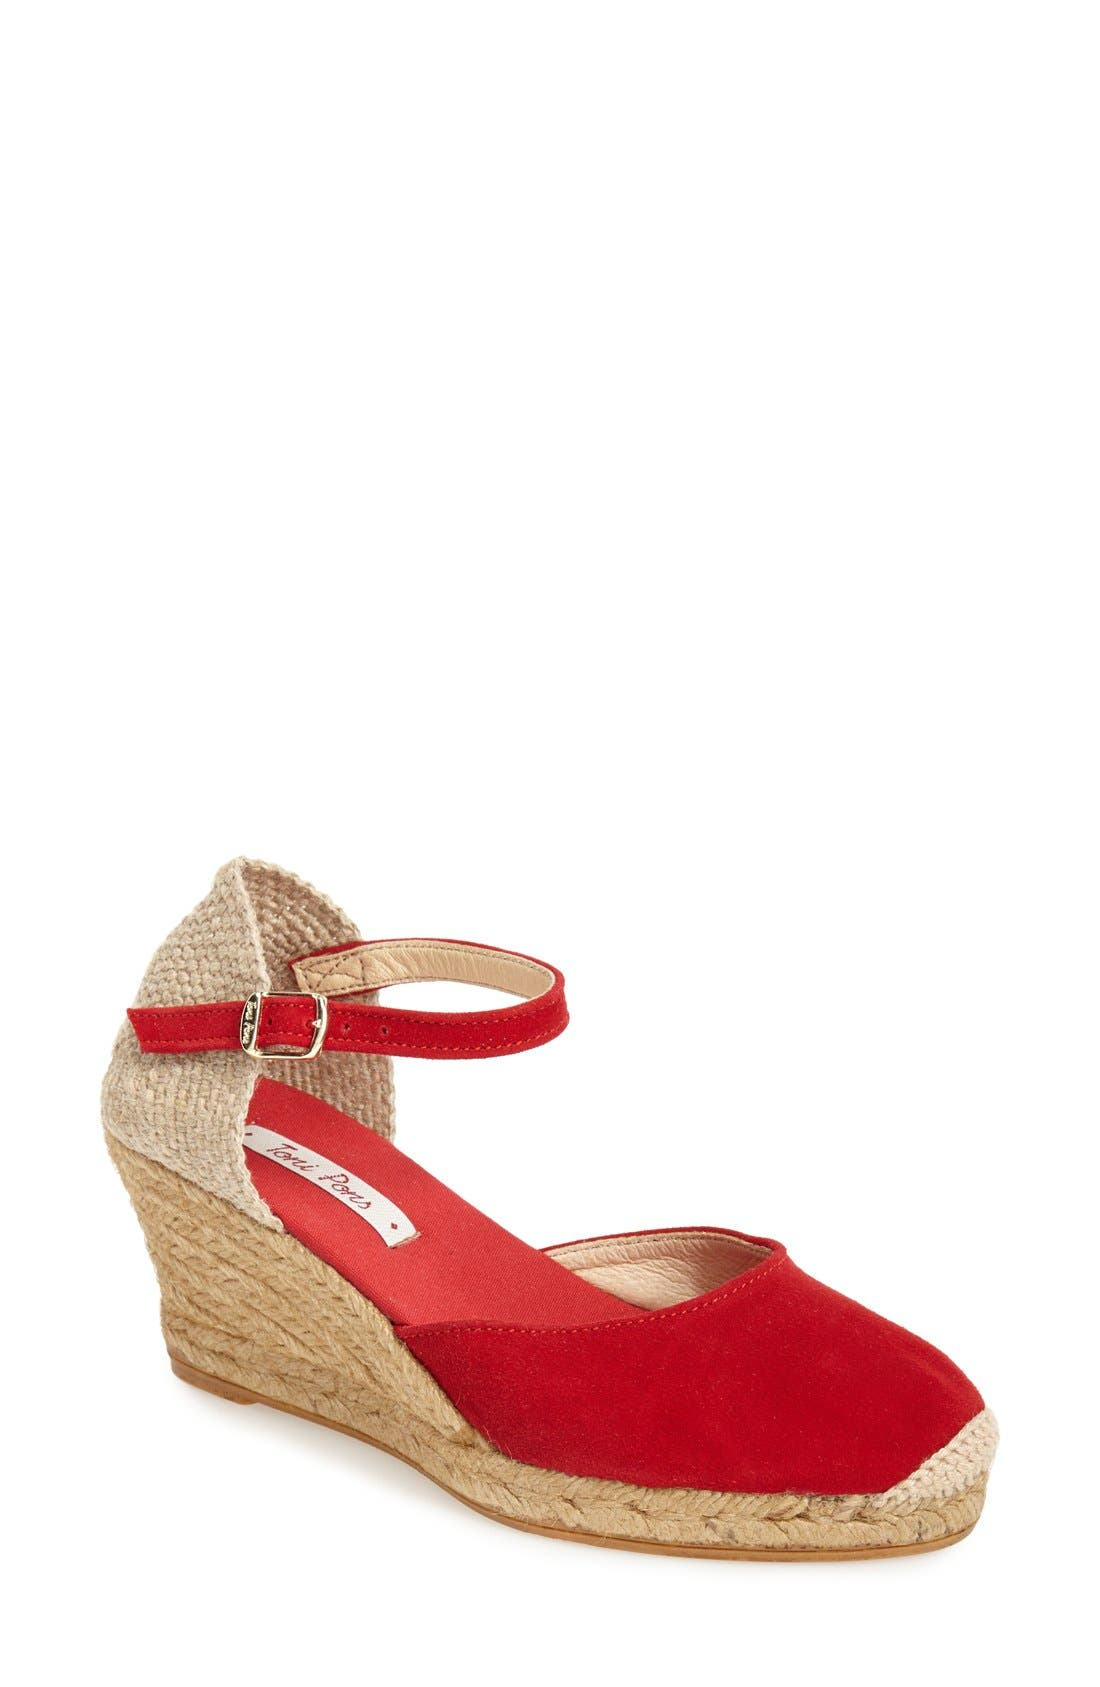 Textural interplay takes center stage on a handcrafted quarter-strap sandal lifted by an espadrille-style wedge and platform. An unexpected heel cutout and breezy open sides make this a fun choice for warmer weather. Style Name: Toni Pons \\\'Lloret-5\\\' Espadrille Wedge Sandal (Women). Style Number: 1056917. Available in stores.